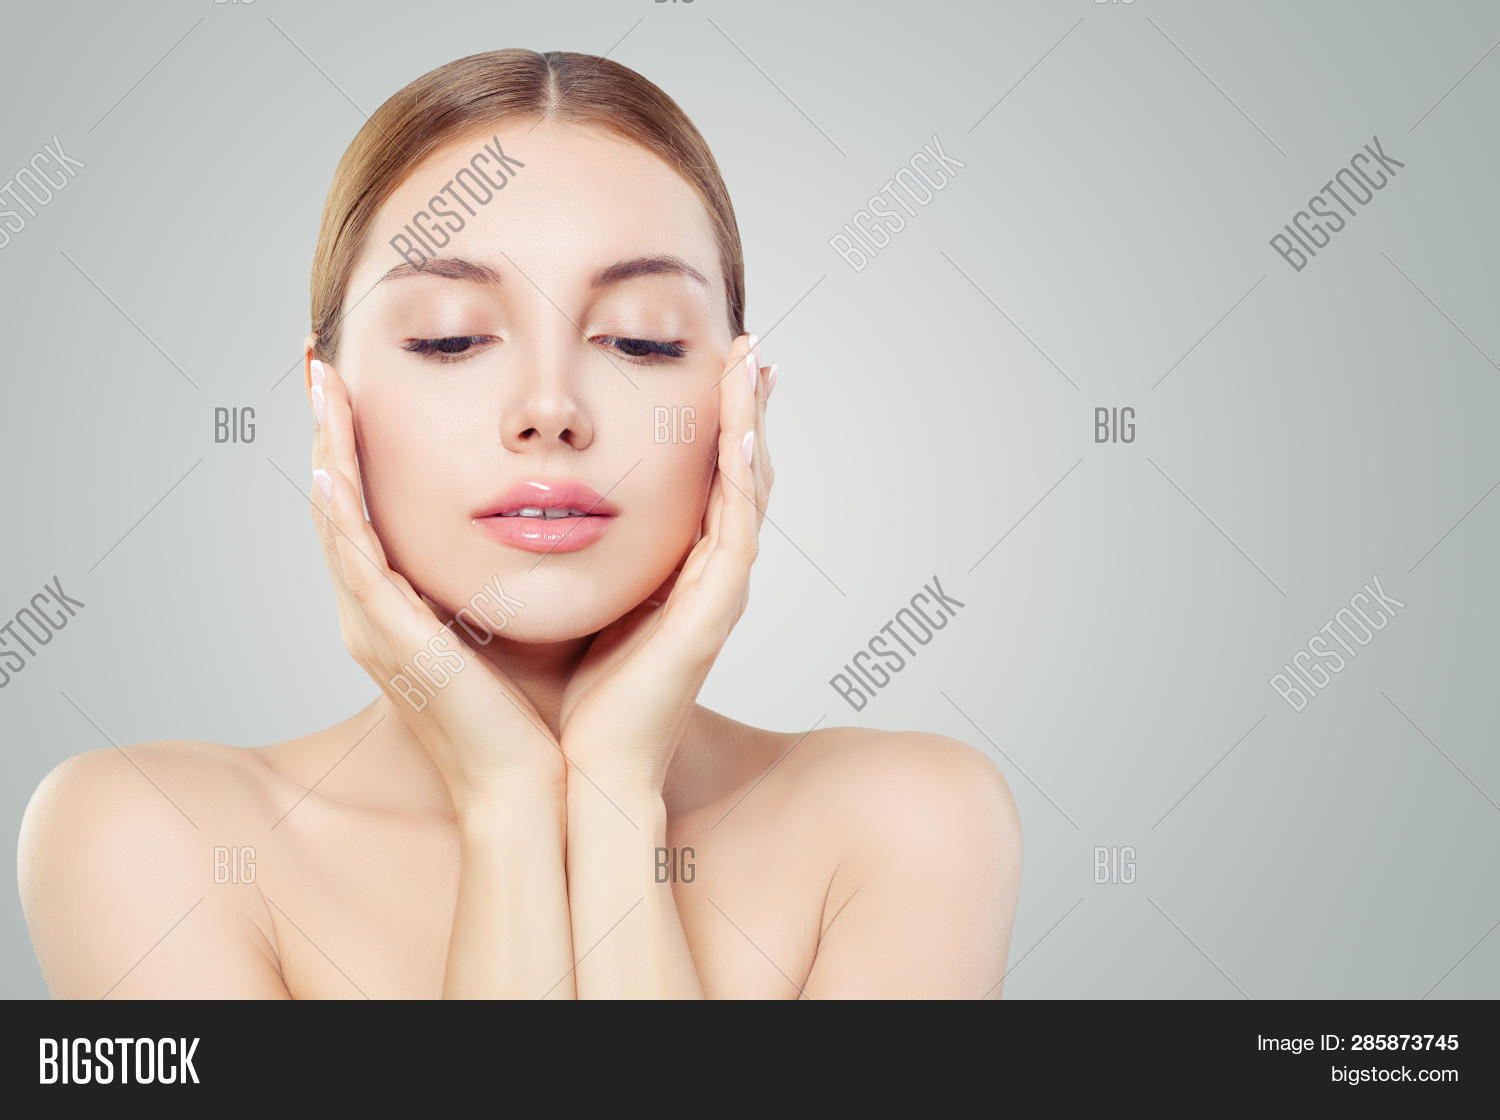 adult,aesthetic,age,aging,anti,antiage,antiaging,background,beautiful,beauty,blonde,care,cheek,cheerful,cosmetology,cute,eyes,face,facial,fashion,female,girl,hand,healthy,hydration,lady,lift,lifting,makeup,medicine,model,moisturizing,natural,plastic,skin,skincare,surgery,touch,treatment,white,woman,wrinkles,young